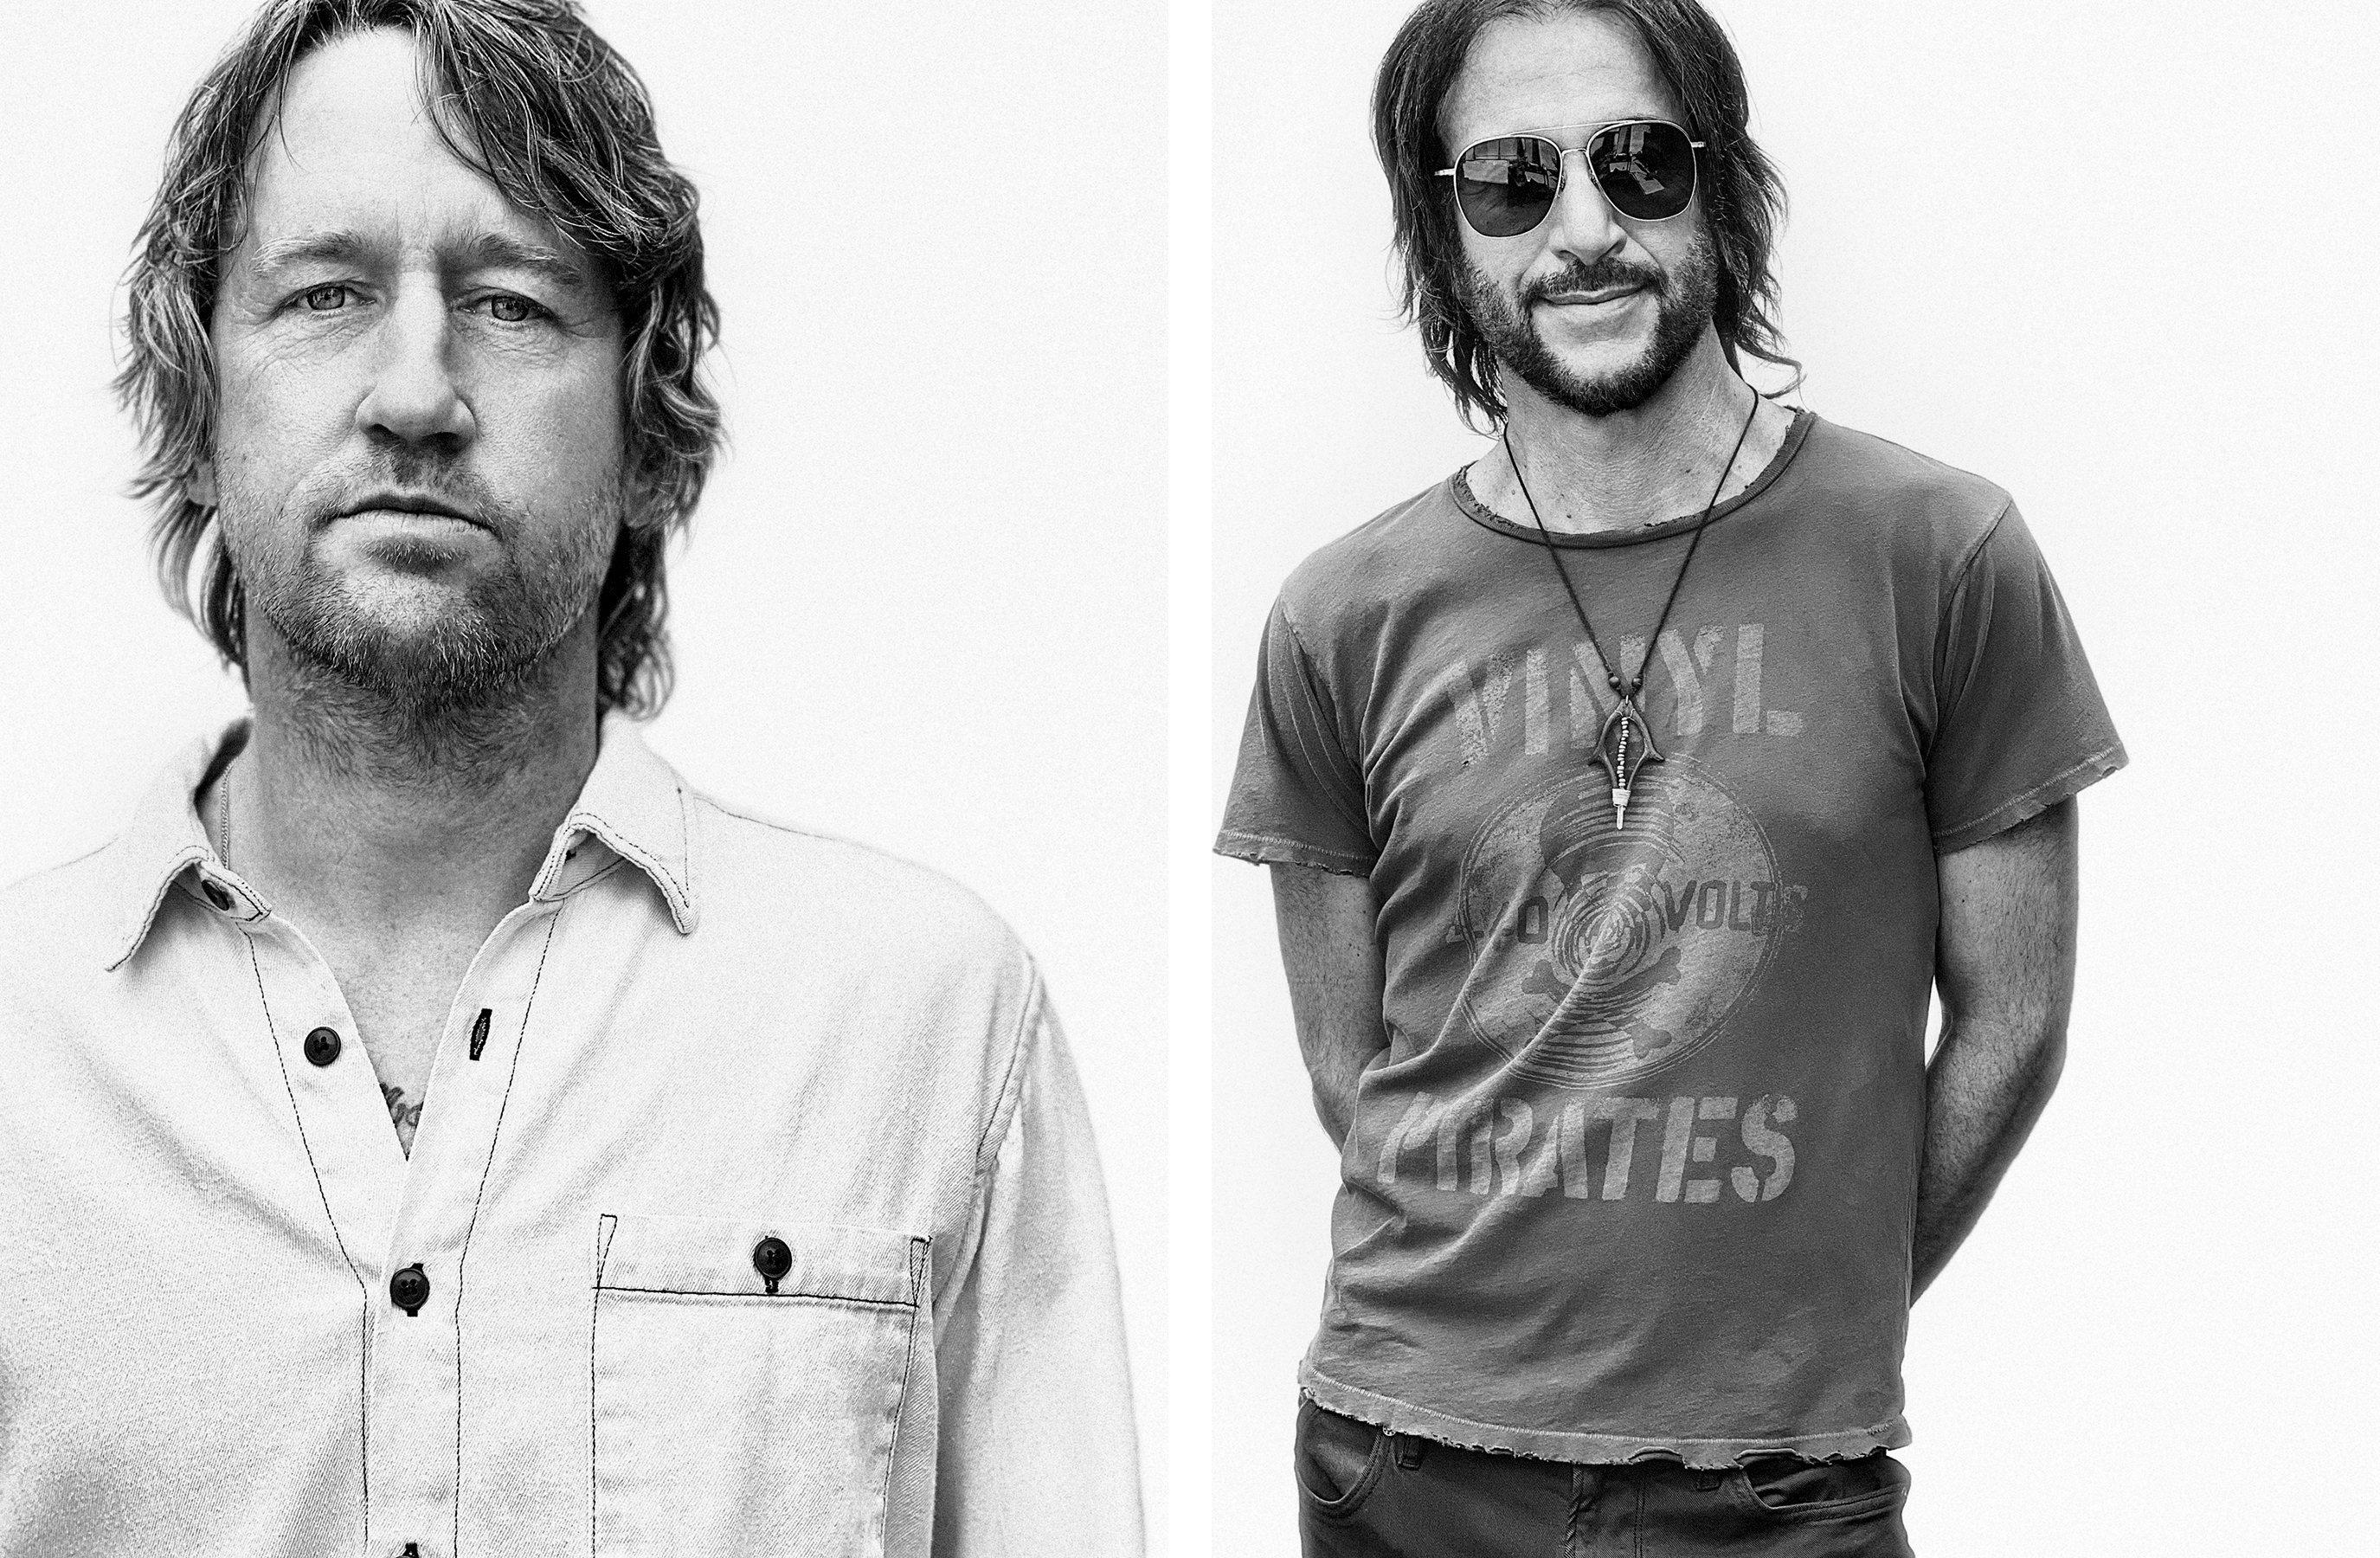 Chris Shiflett and Rami Jaffee photographed in Los Angeles on June 10th, 2021.